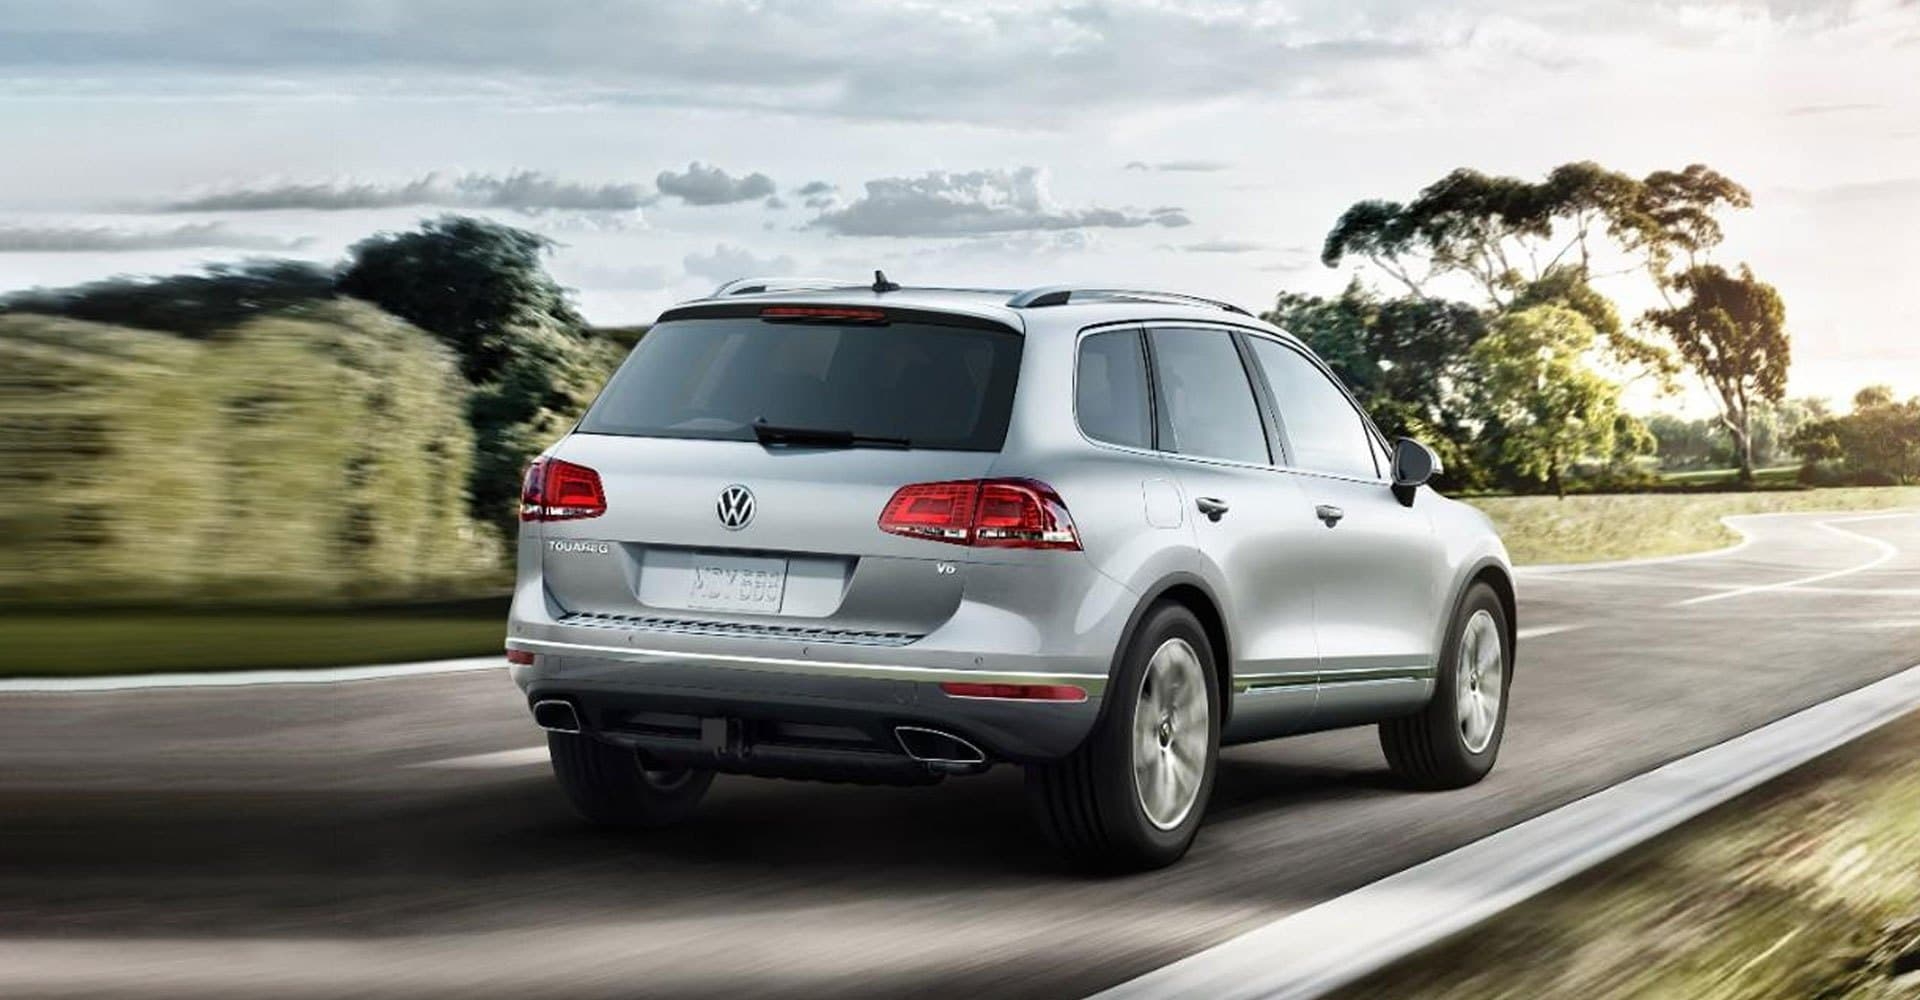 Rear 3/4 view of the VW Touareg driving through the highway